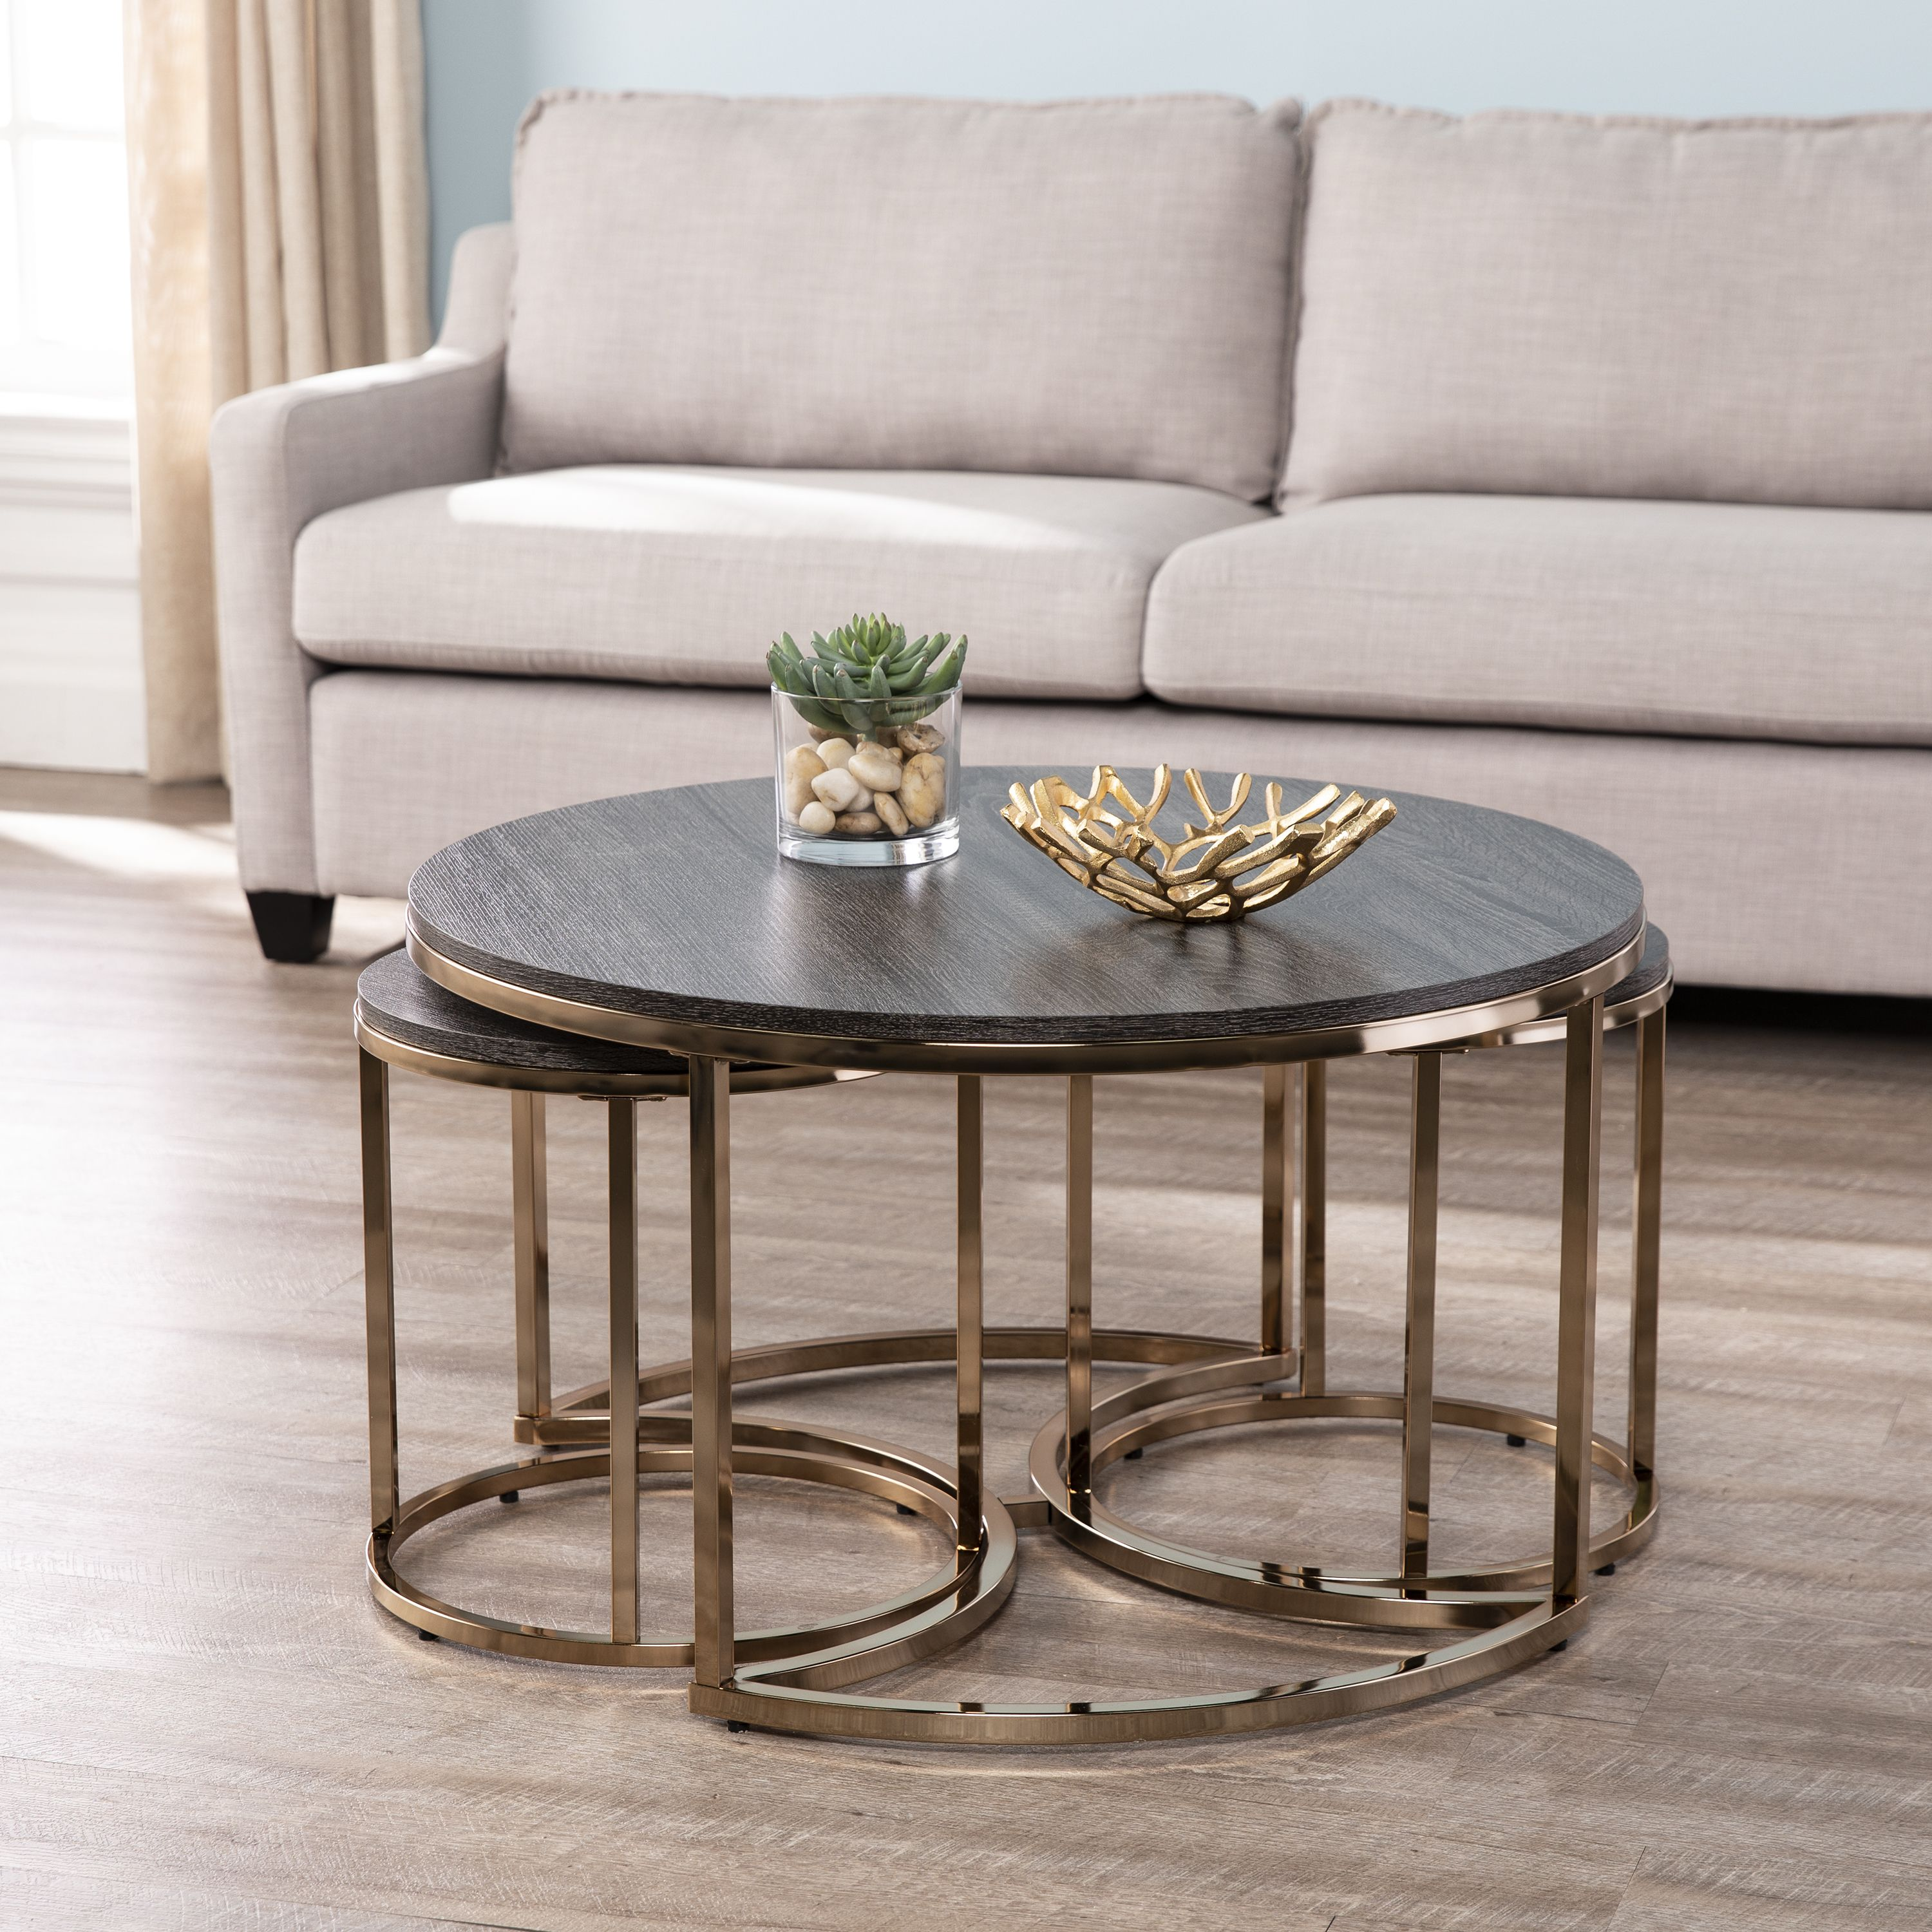 Home Round Nesting Coffee Tables Nesting Coffee Tables Coffee